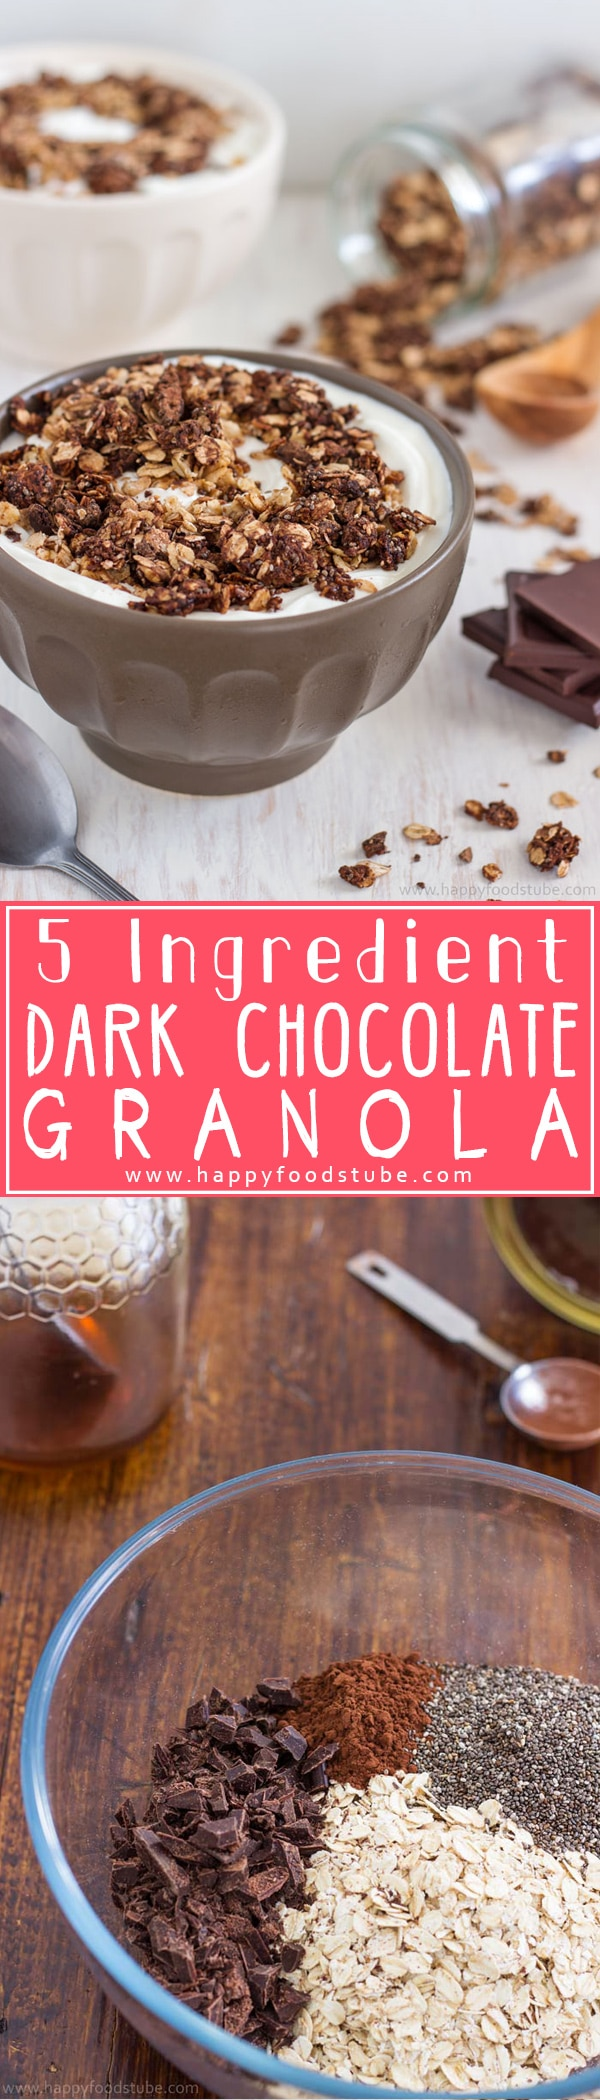 How to make Dark Chocolate Granola Recipe. This healthy breakfast or snack is also gluten free & nut free! | happyfoodstube.com